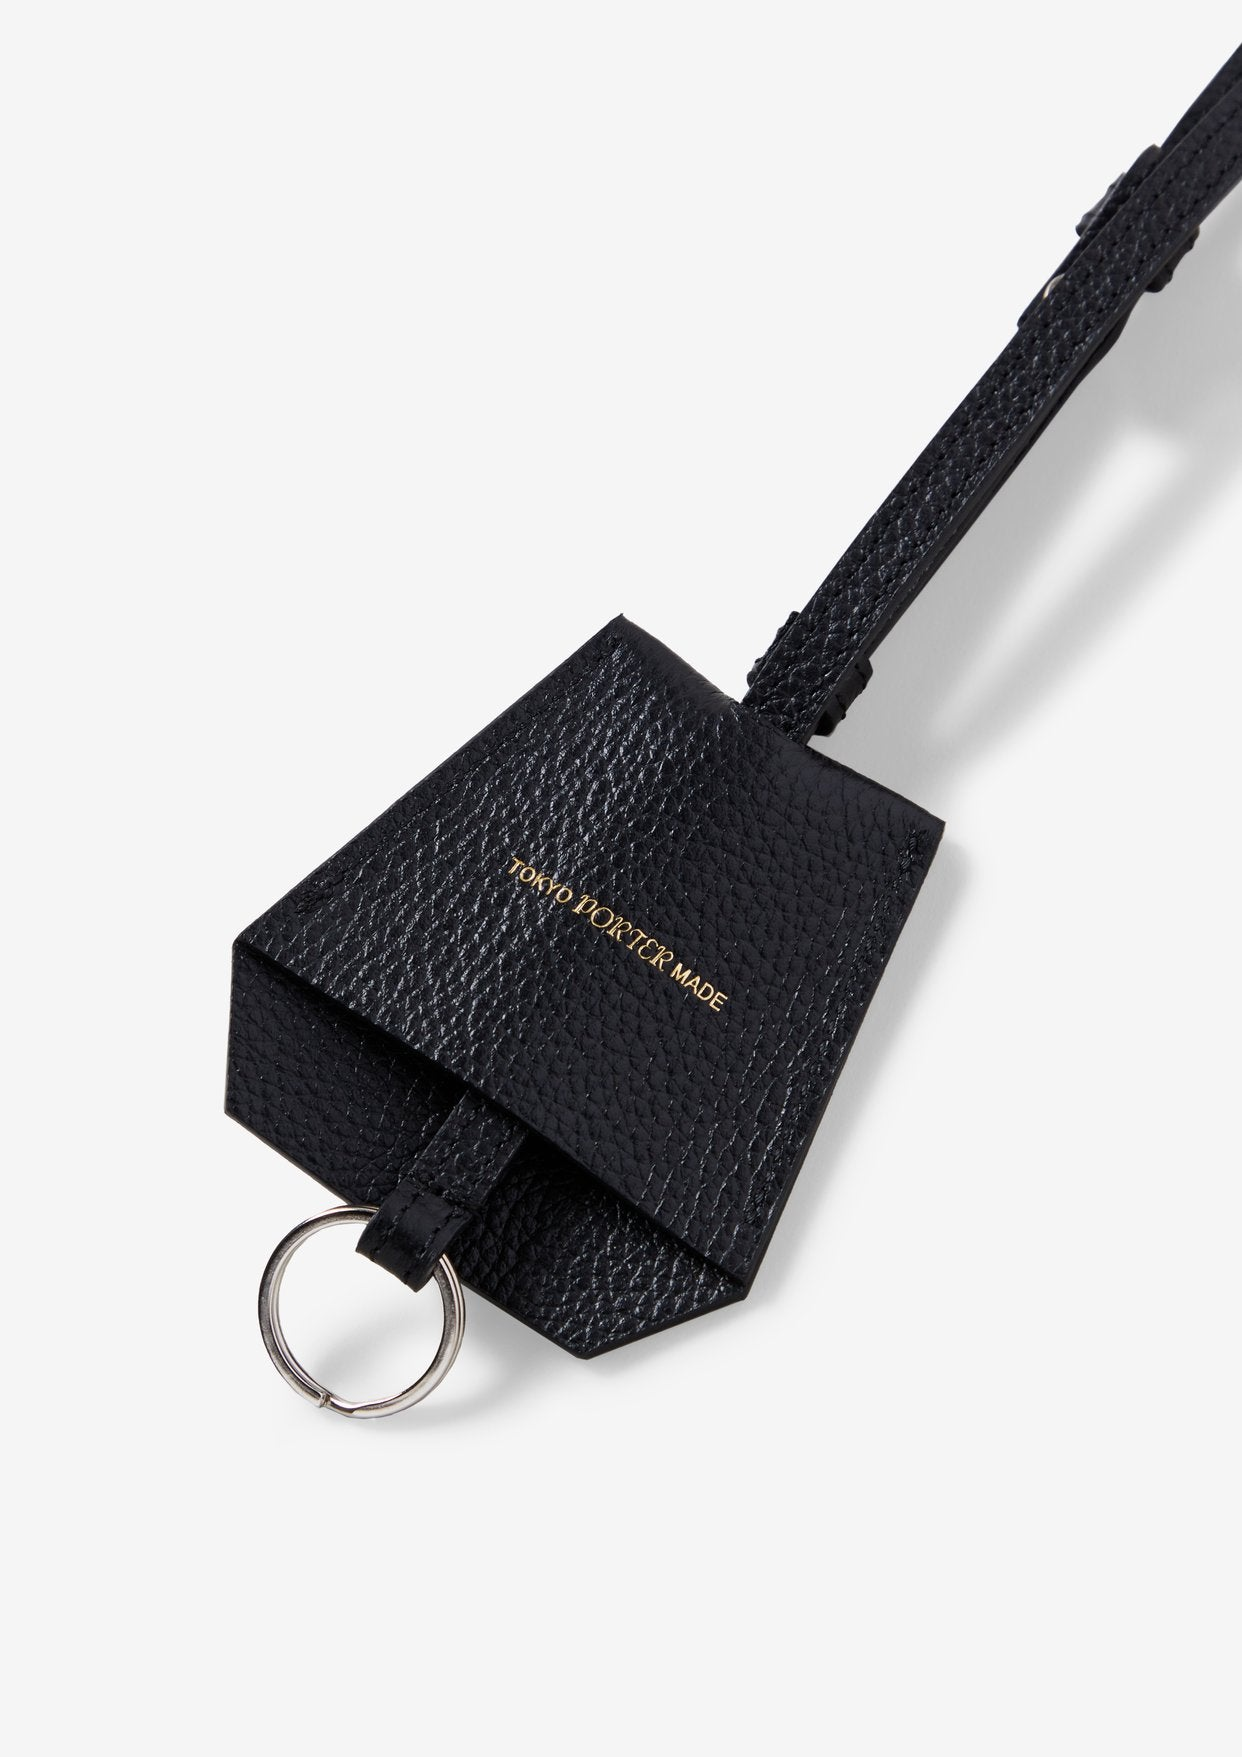 NHPT . KEY COVER / CL-STRAP